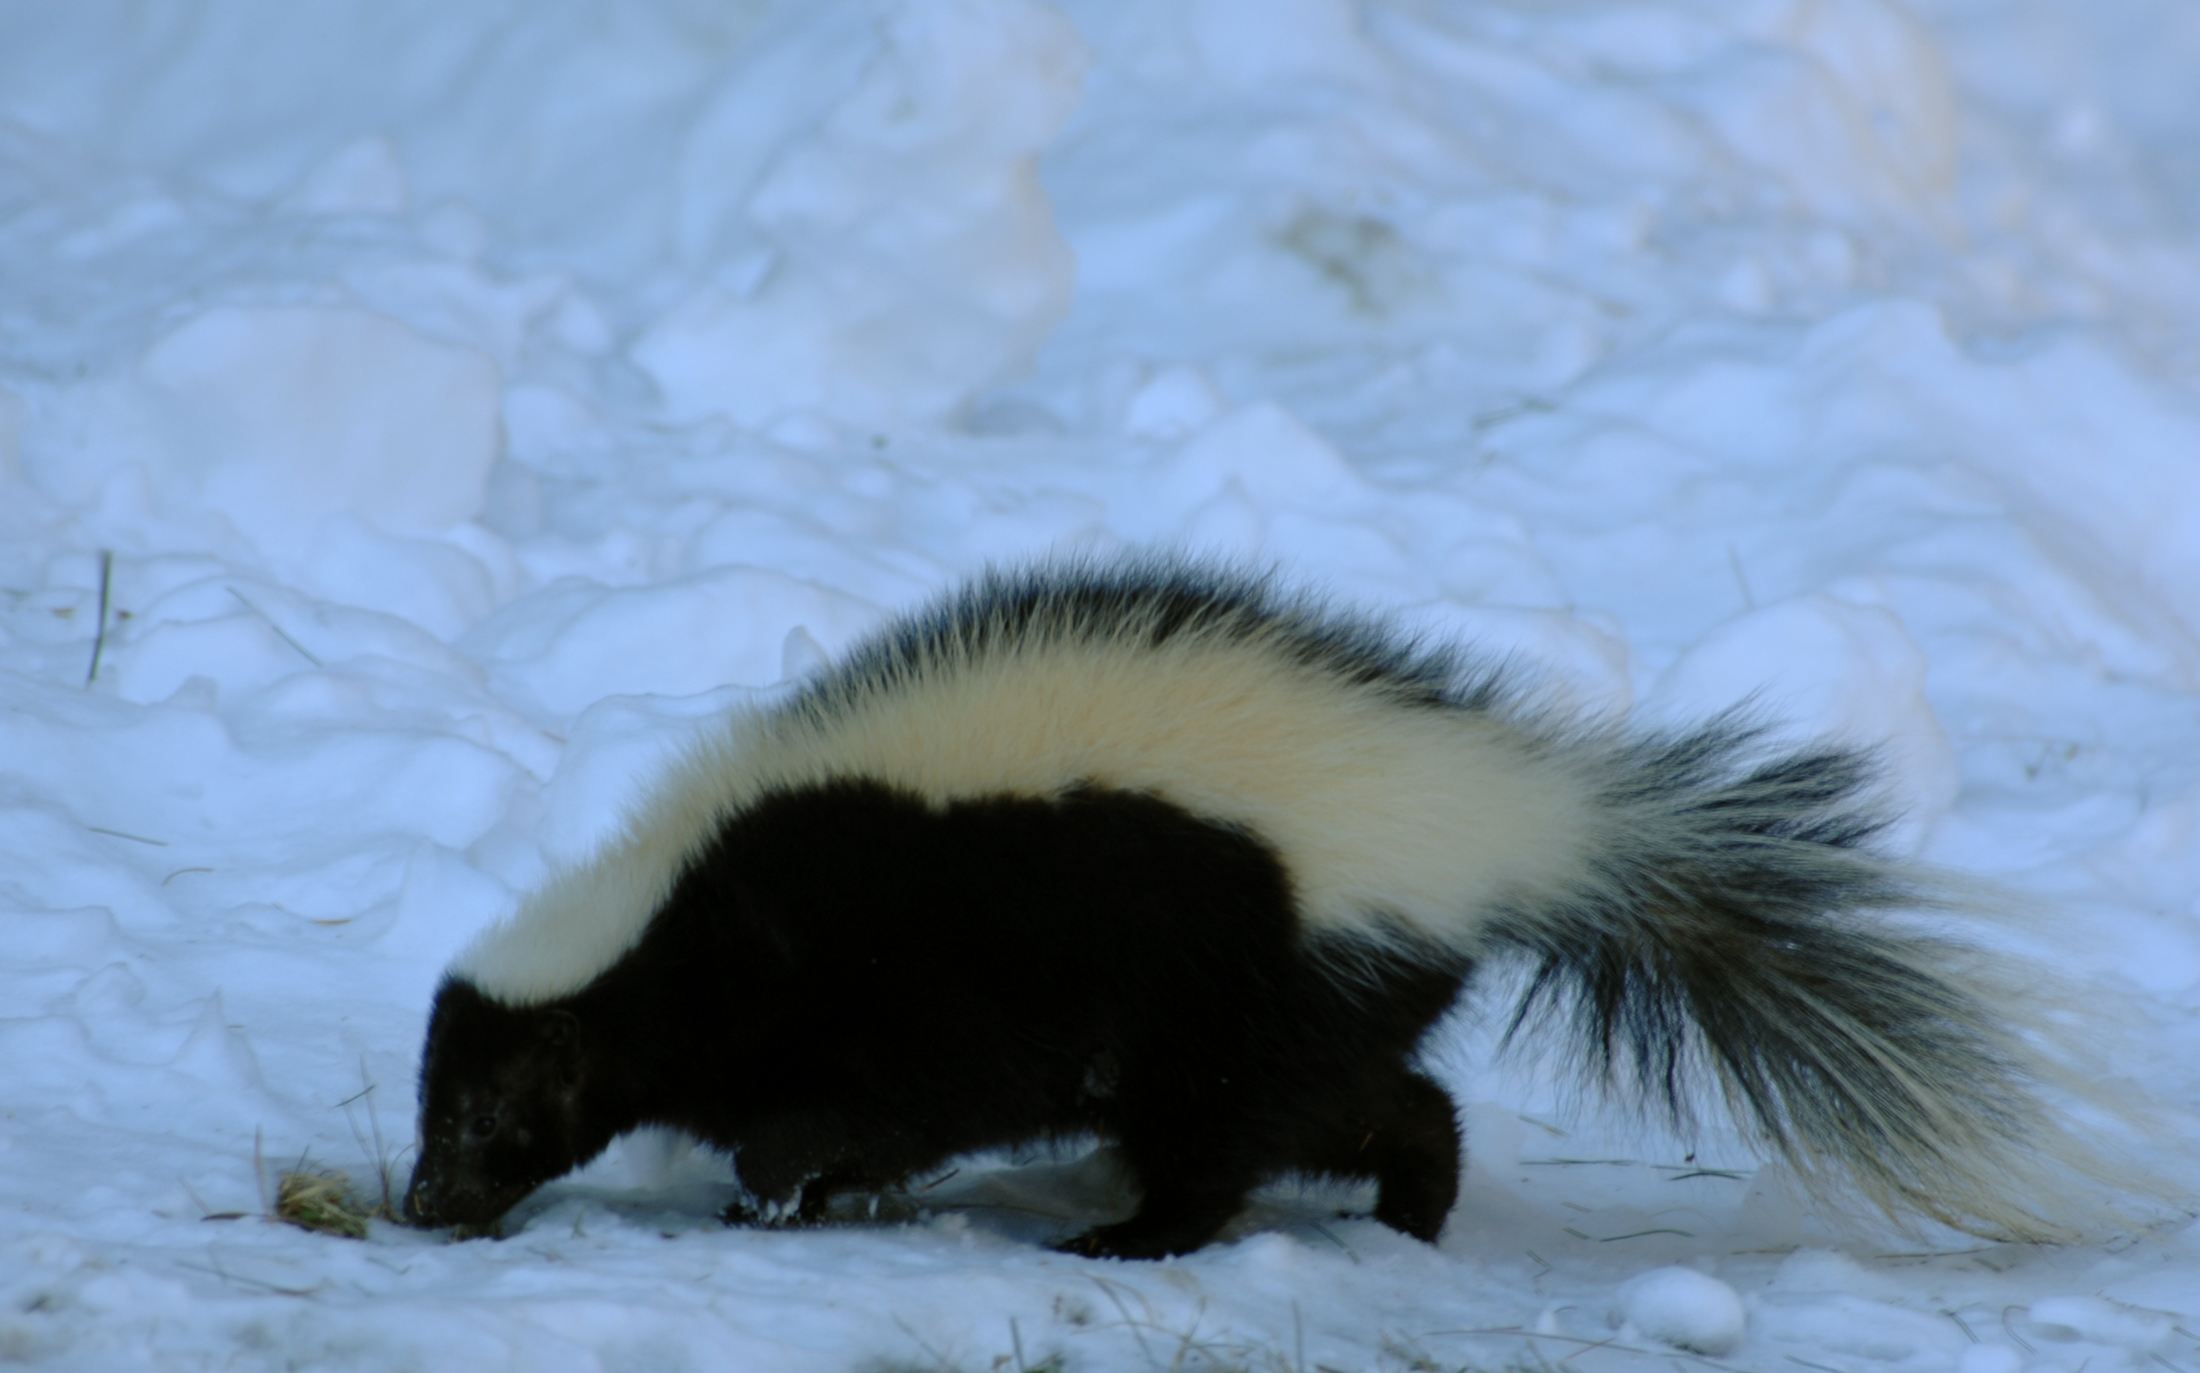 This is the only effective way to get rid of skunk stink